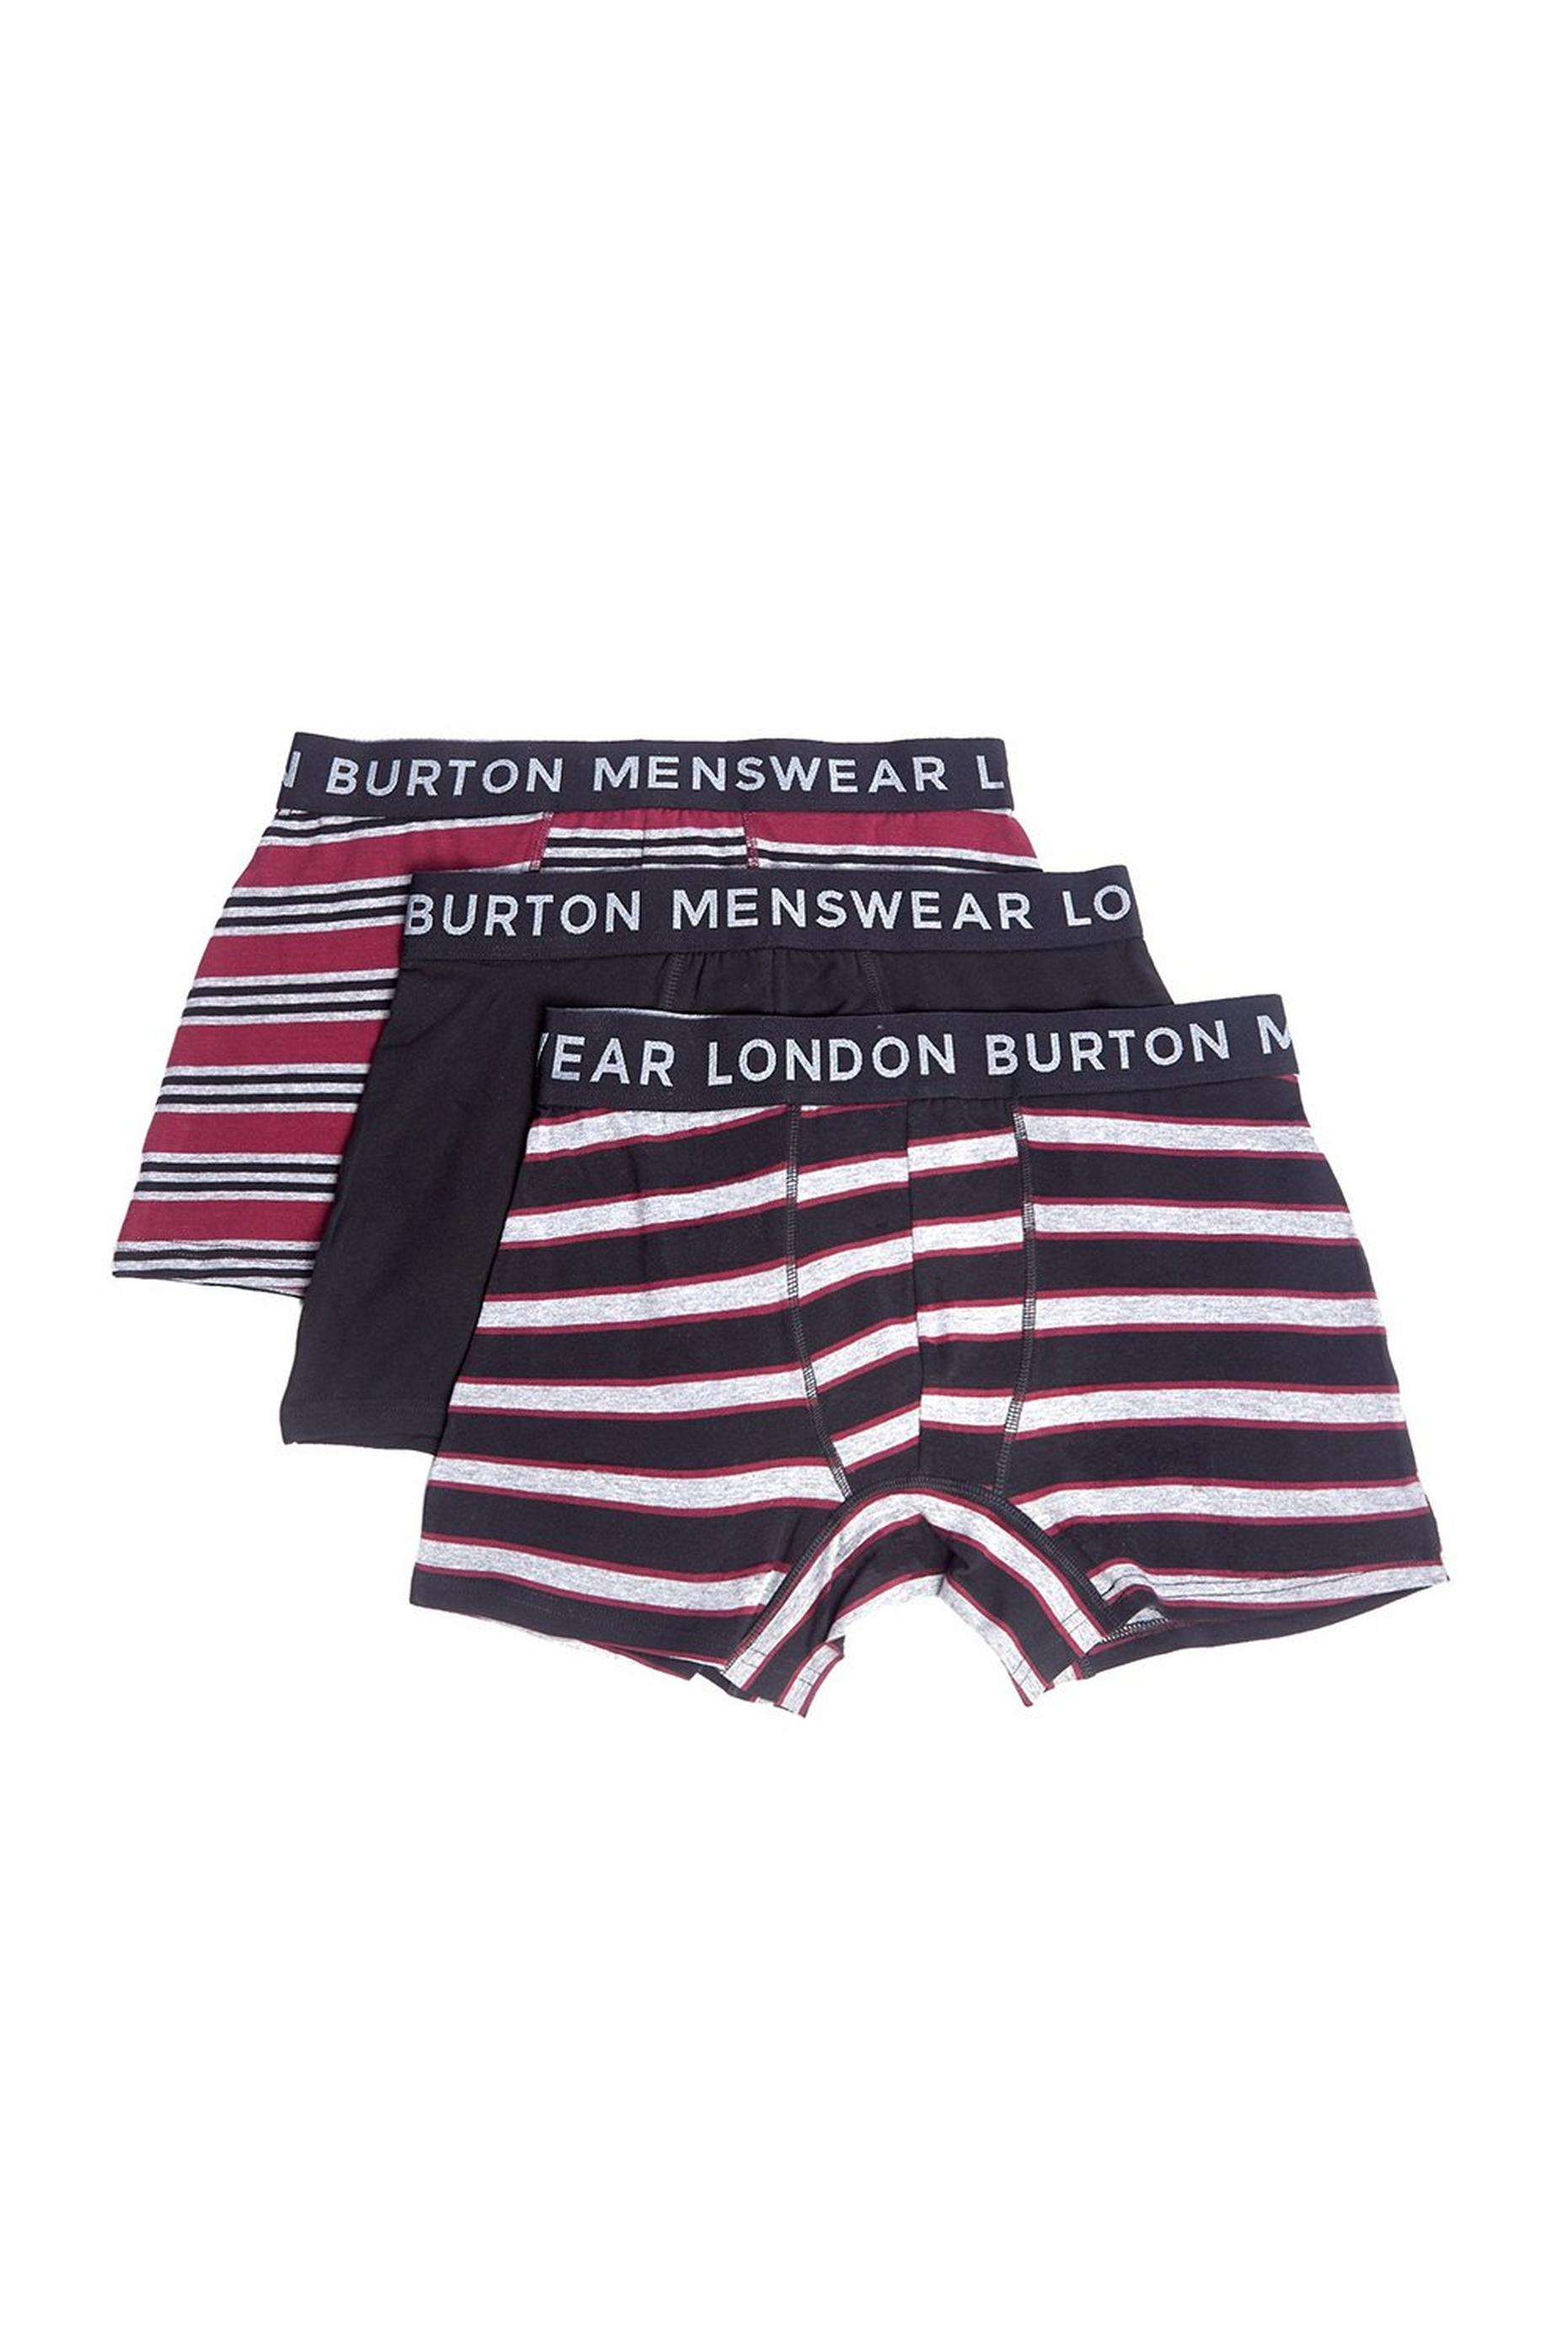 3 Pack Red Mutlistripe Trunks